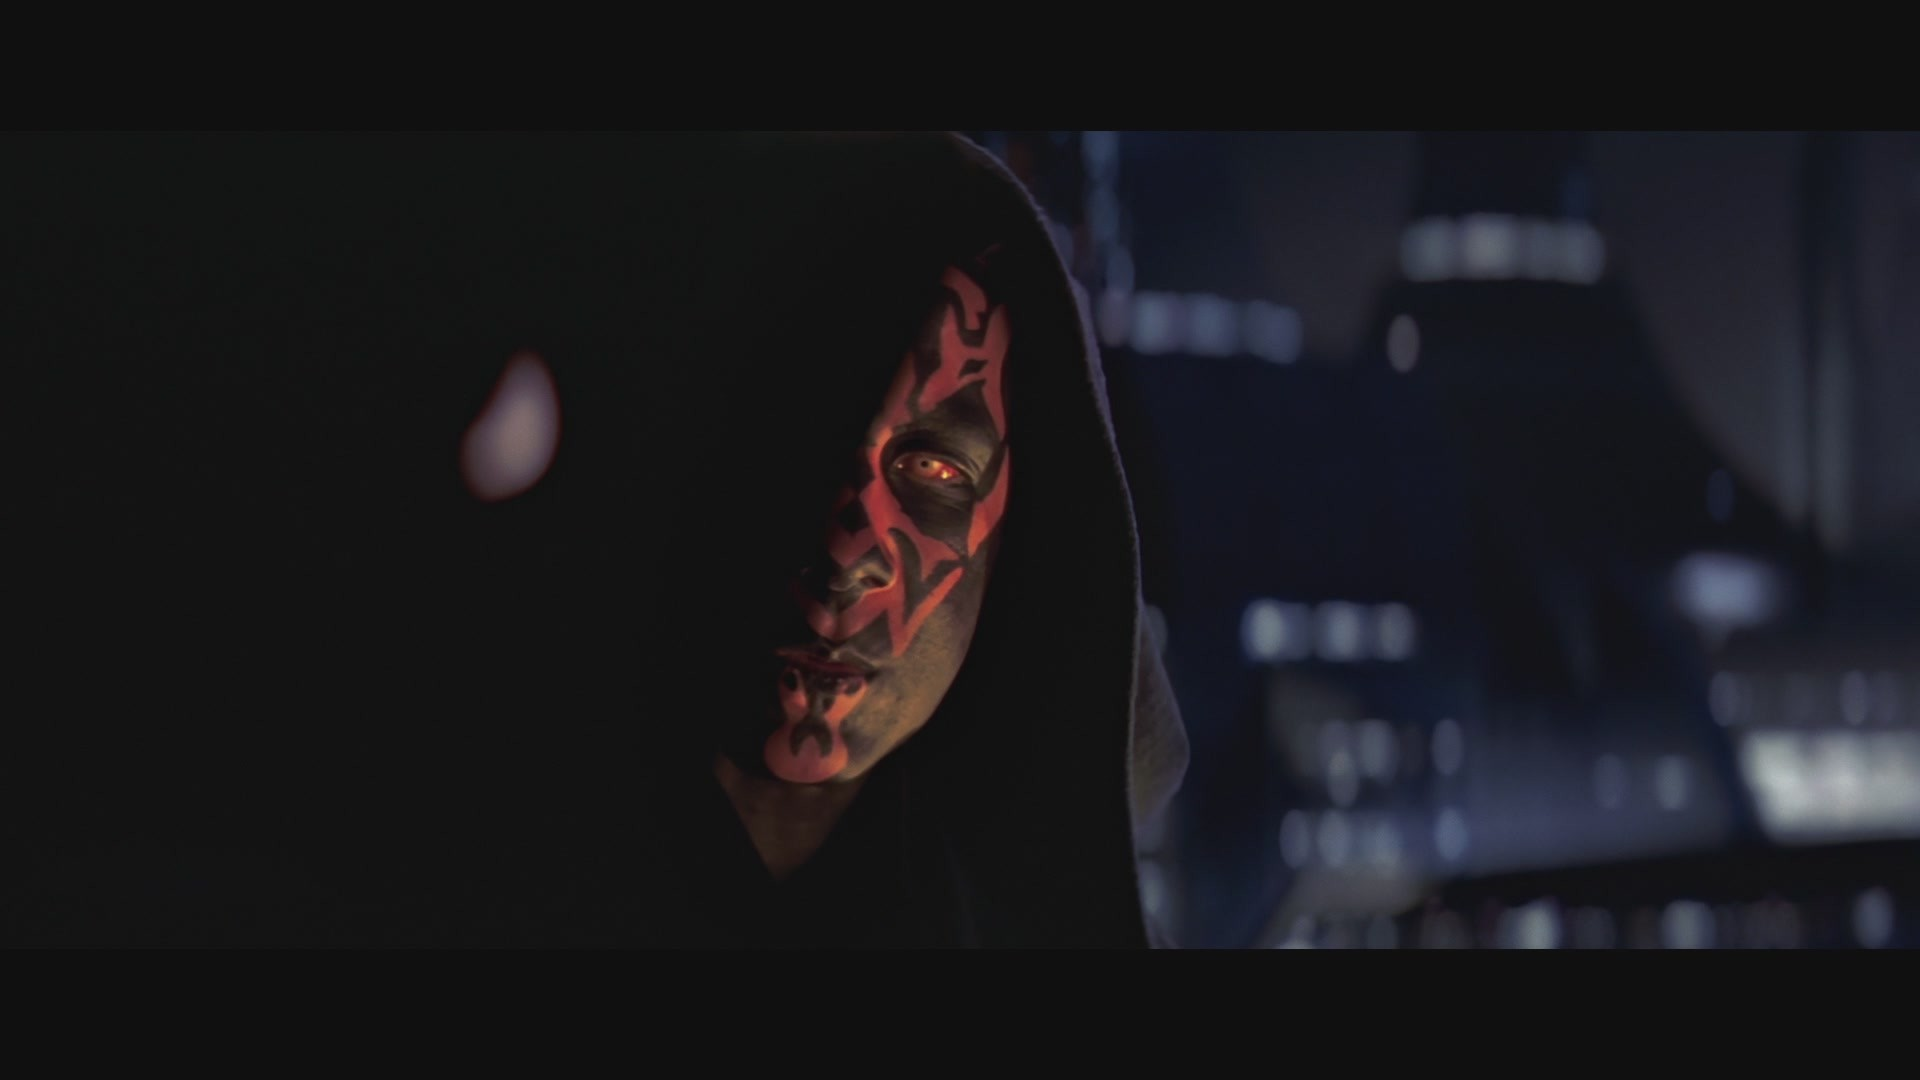 Darth Maul Wallpapers Posted By John Anderson